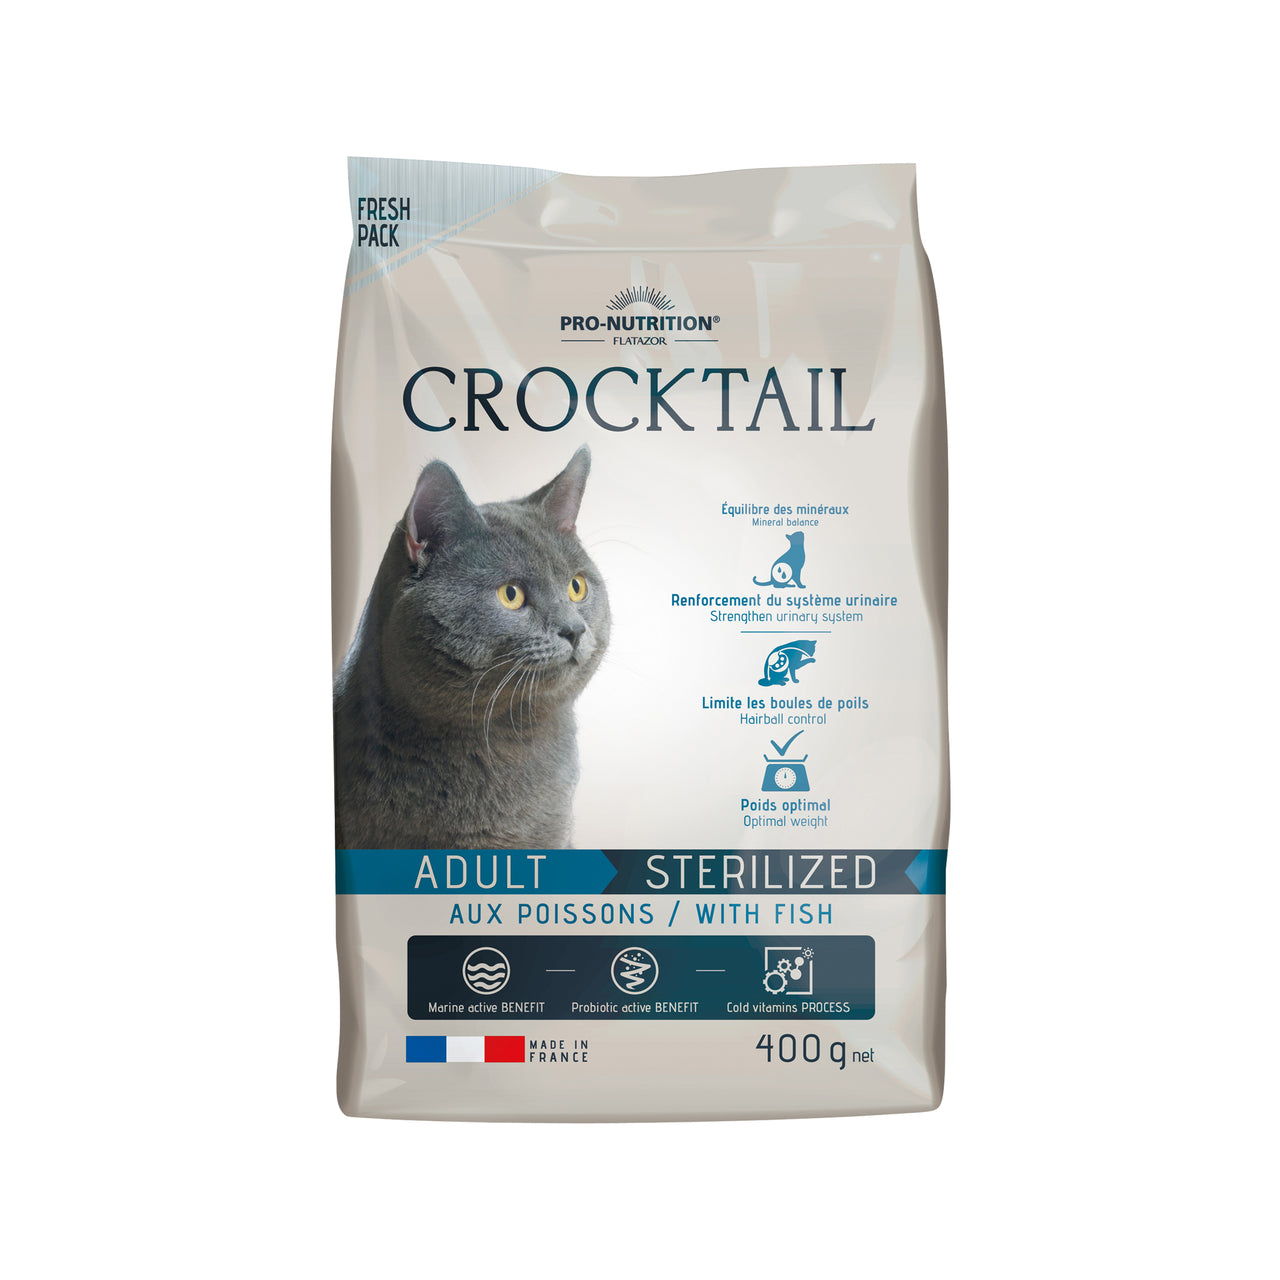 Crocktail Adult Sterilized Fish 400g